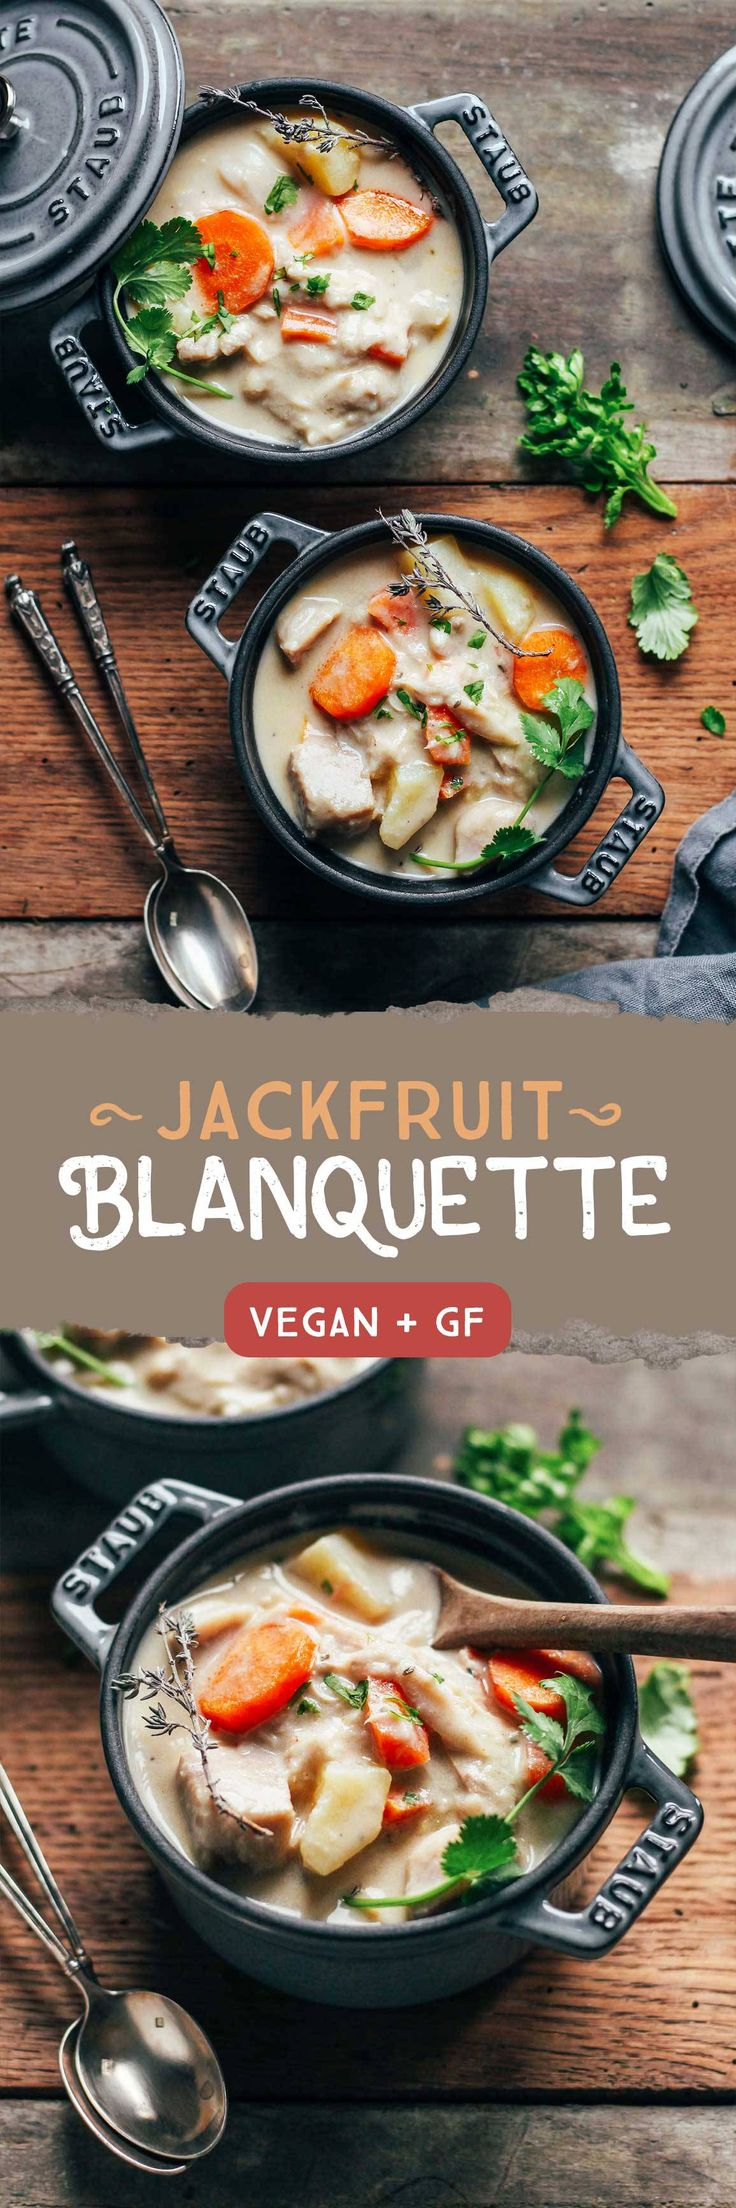 Jackfruit Blanquette. Looks good! Different type of soup loaded with veggies.